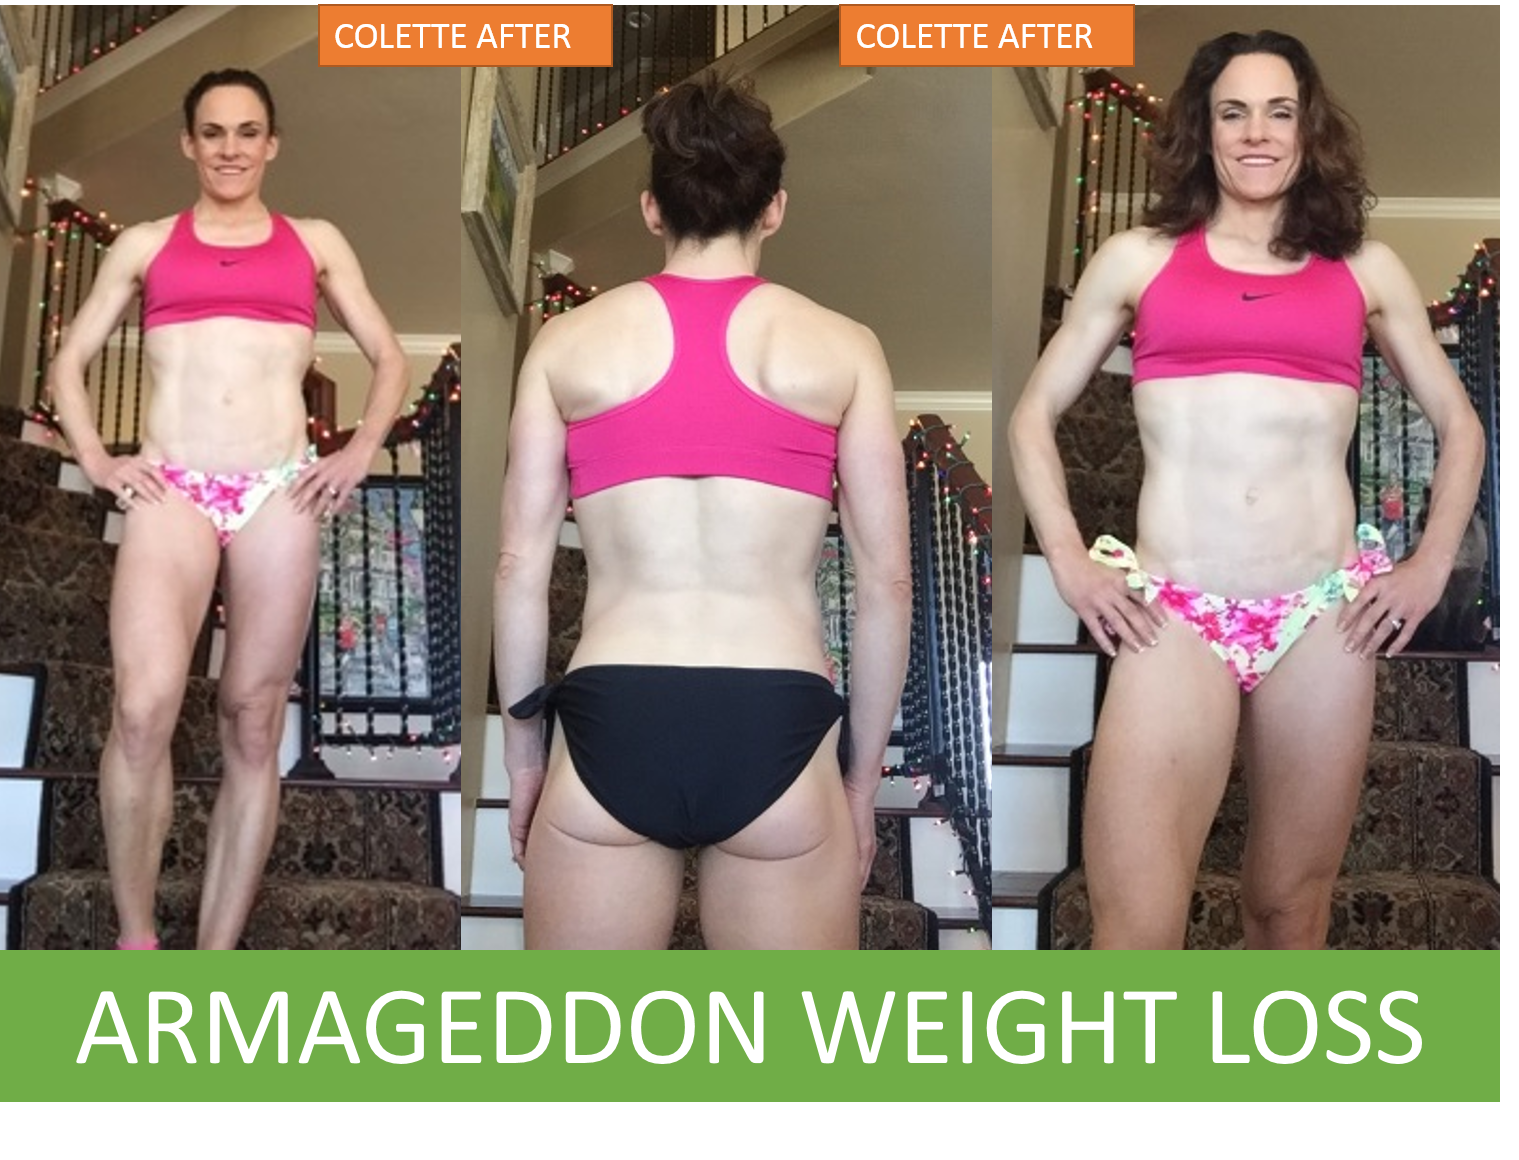 COLETTE STEWART - CORRIE ROSE - ARMAGEDDON WEIGHT LOSS RADIO SHOW - BEST WEIGHT LOSS DVD FOR WOMEN - BRUCE WAYNE, DOCSCIENCE-3 -